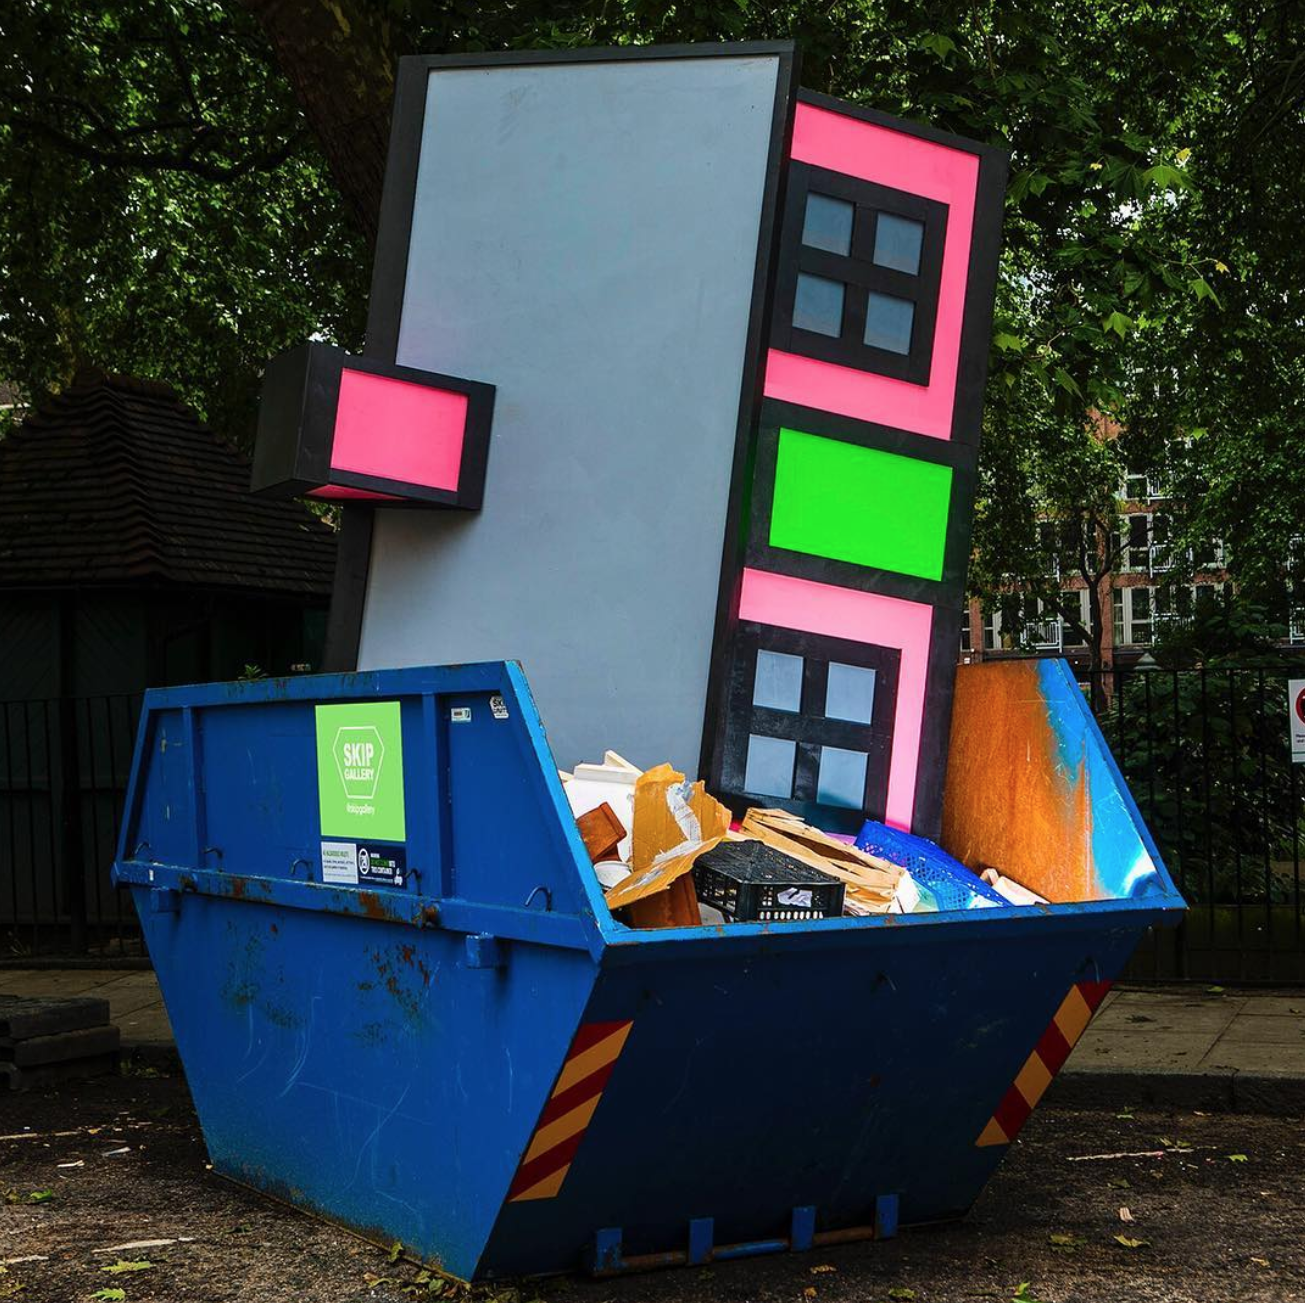 'Upgrade' in Hoxton Square